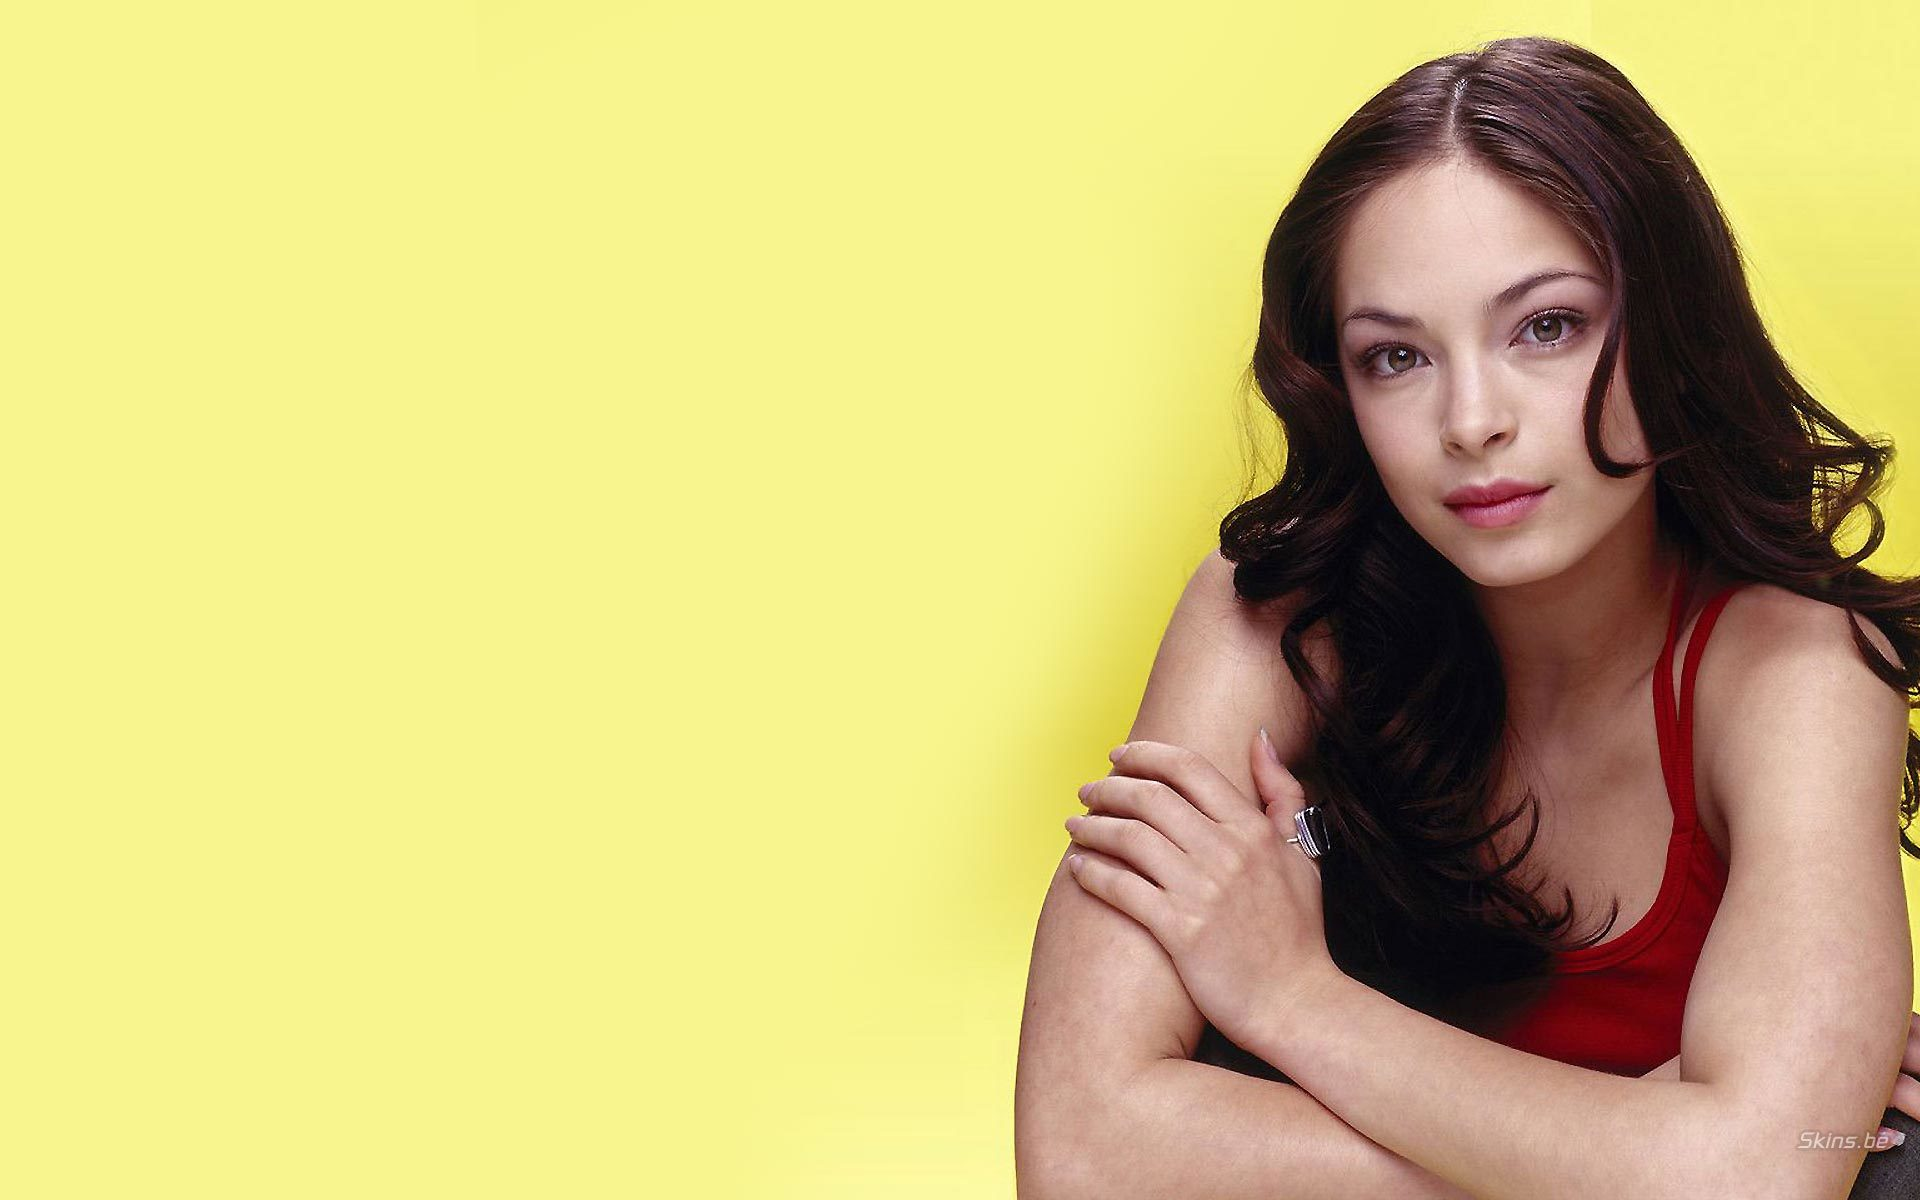 Women Actress kristin kreuk HD Wallpaper